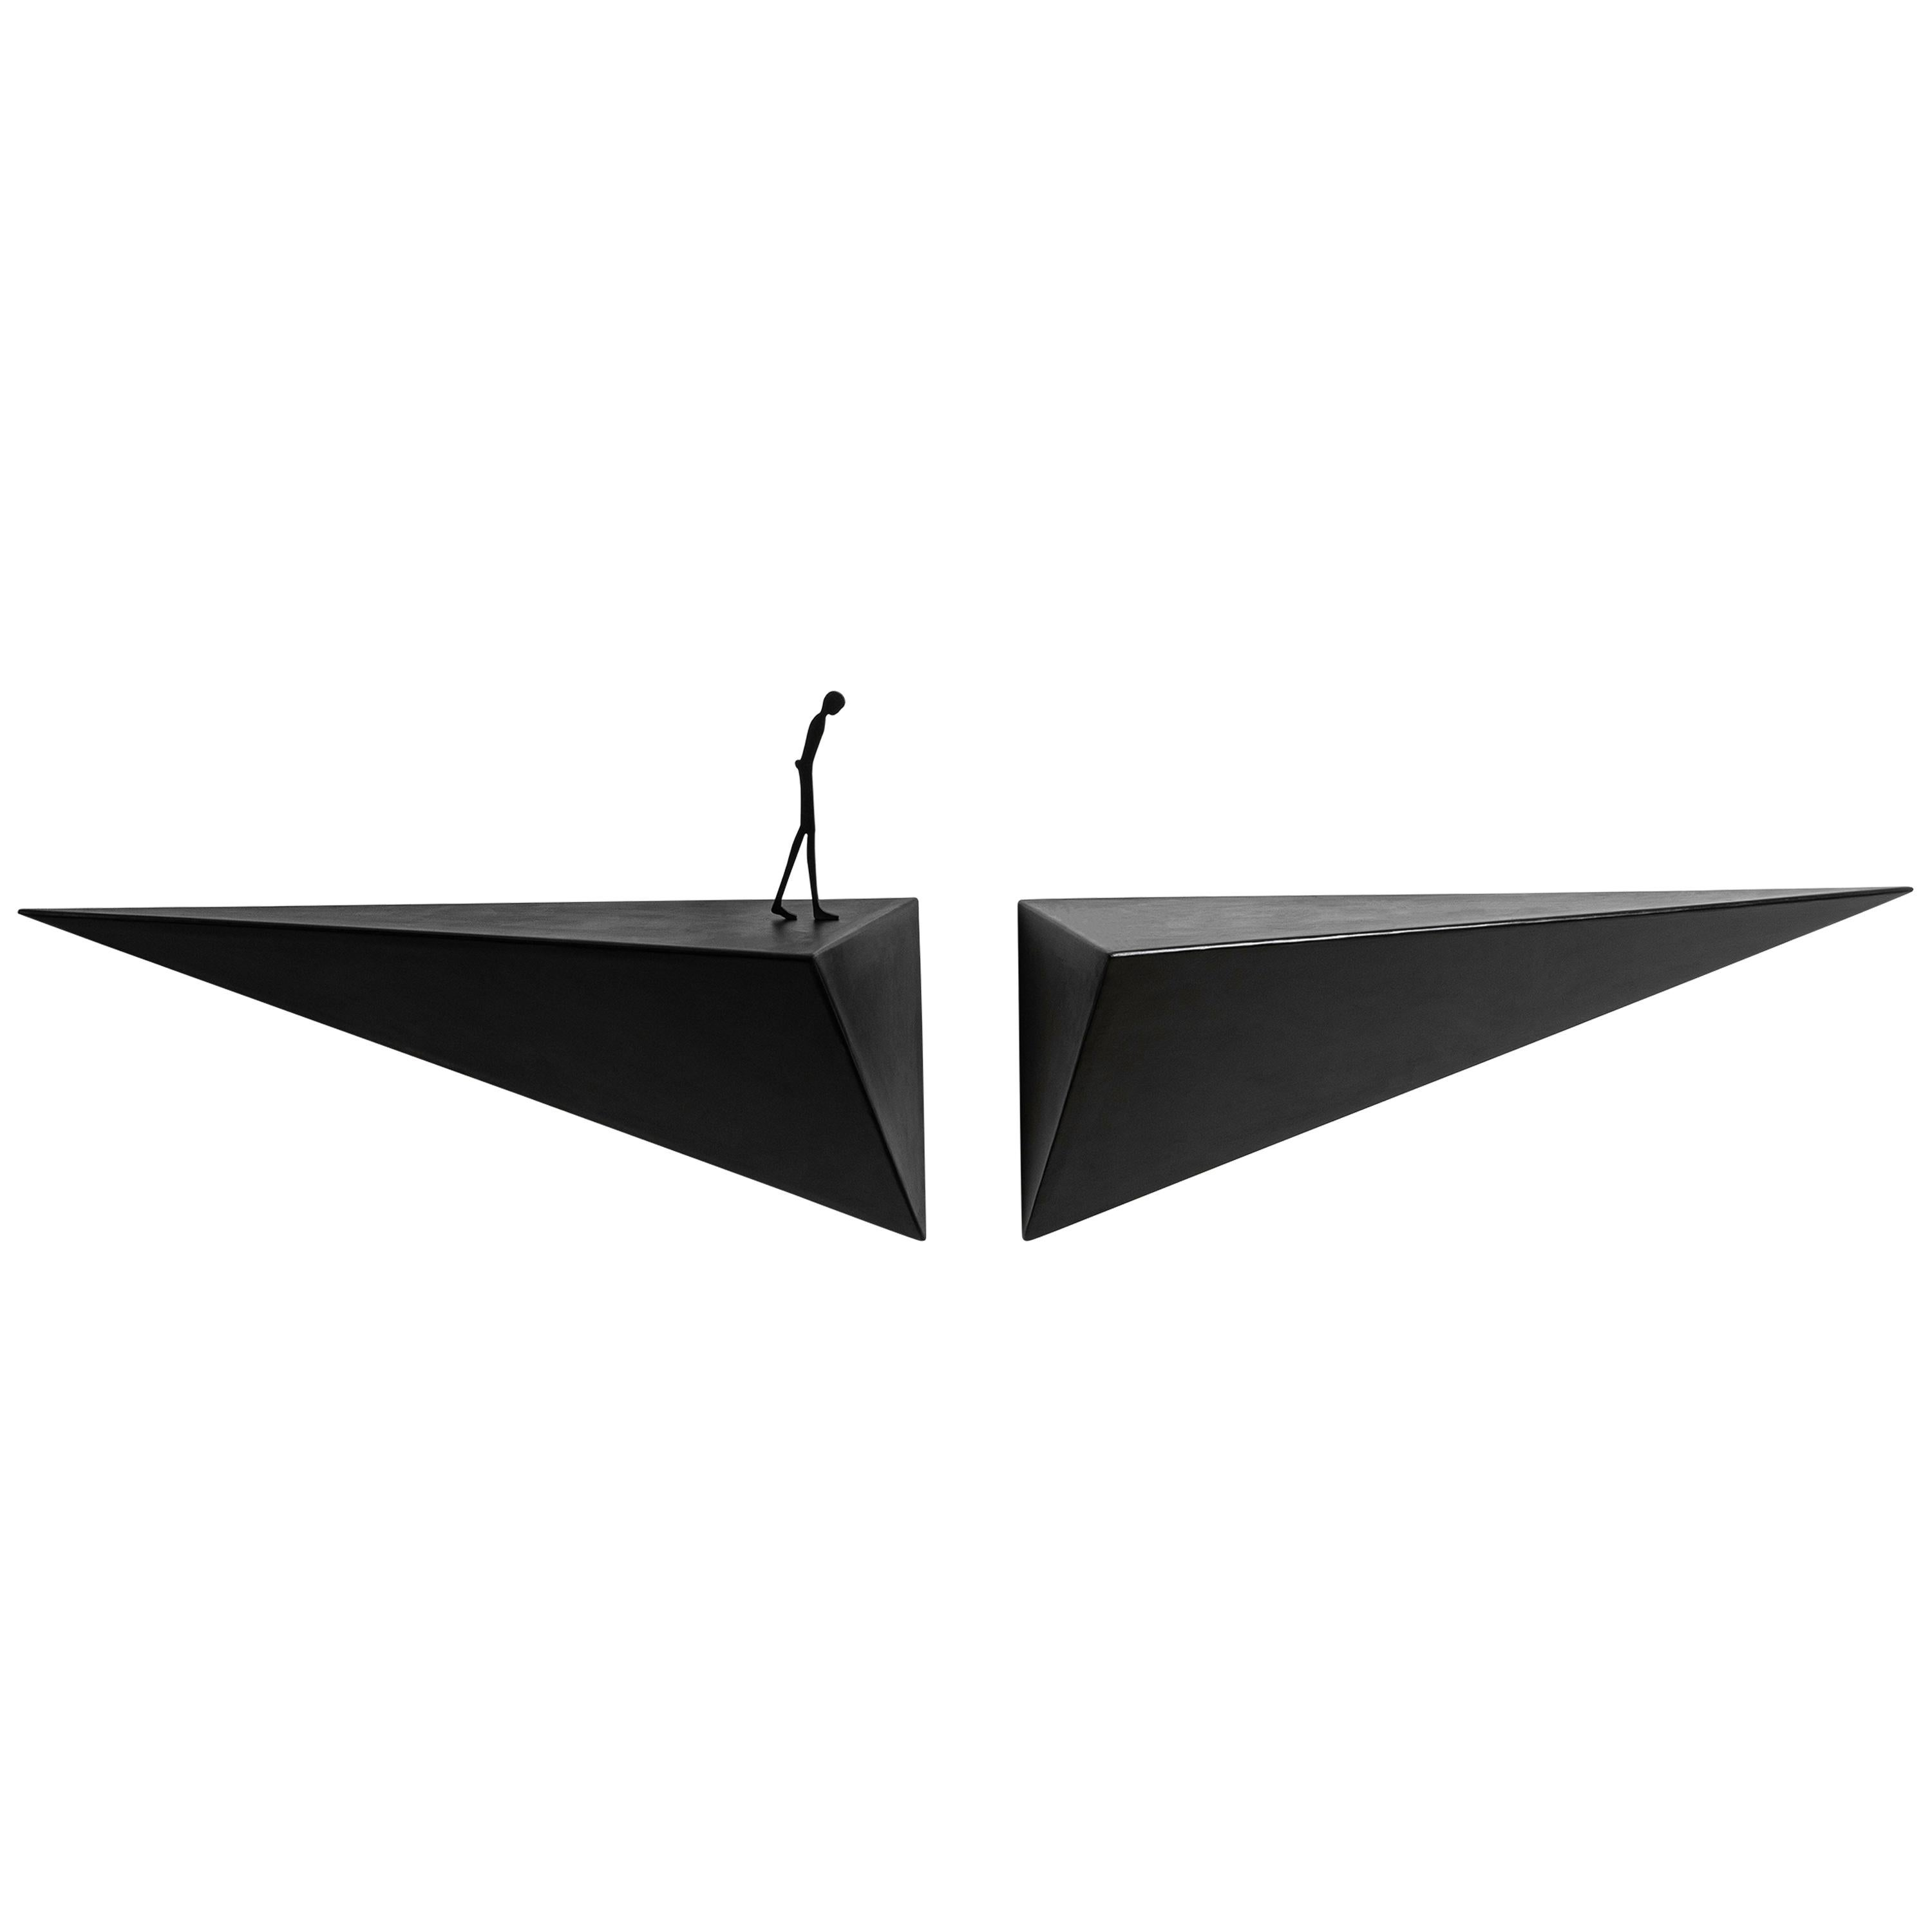 Modern Alex Pinna for Dilmos Shelf Suspended Console Patinated Waxed Metal